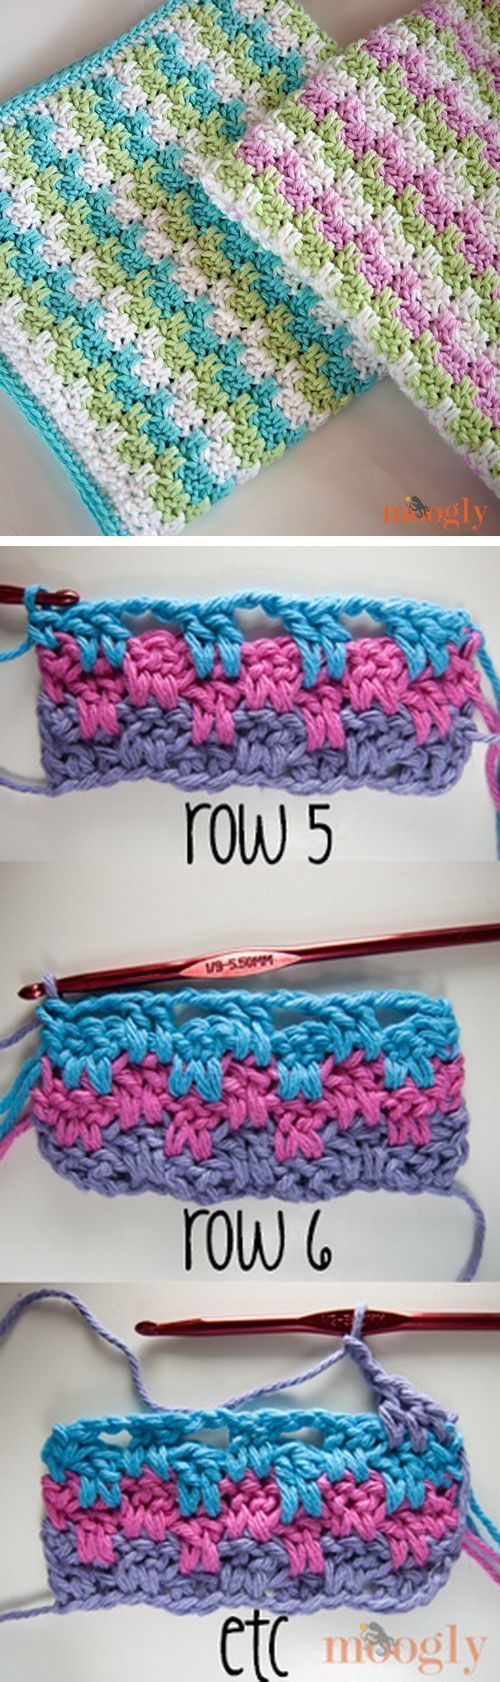 30+ Free Crochet Patterns For Blankets   Accesorios para bebes ...